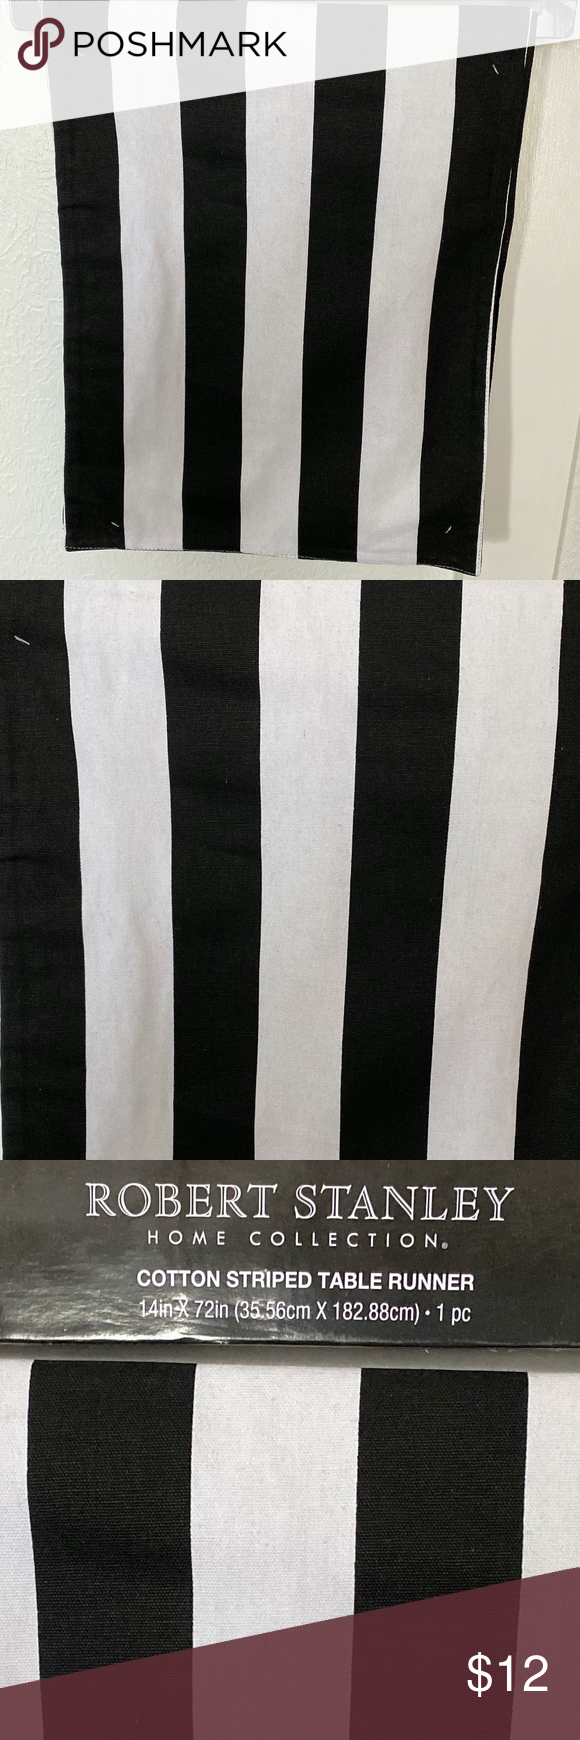 Cotton Striped Table Runner Striped Table Striped Table Runner Table Runners